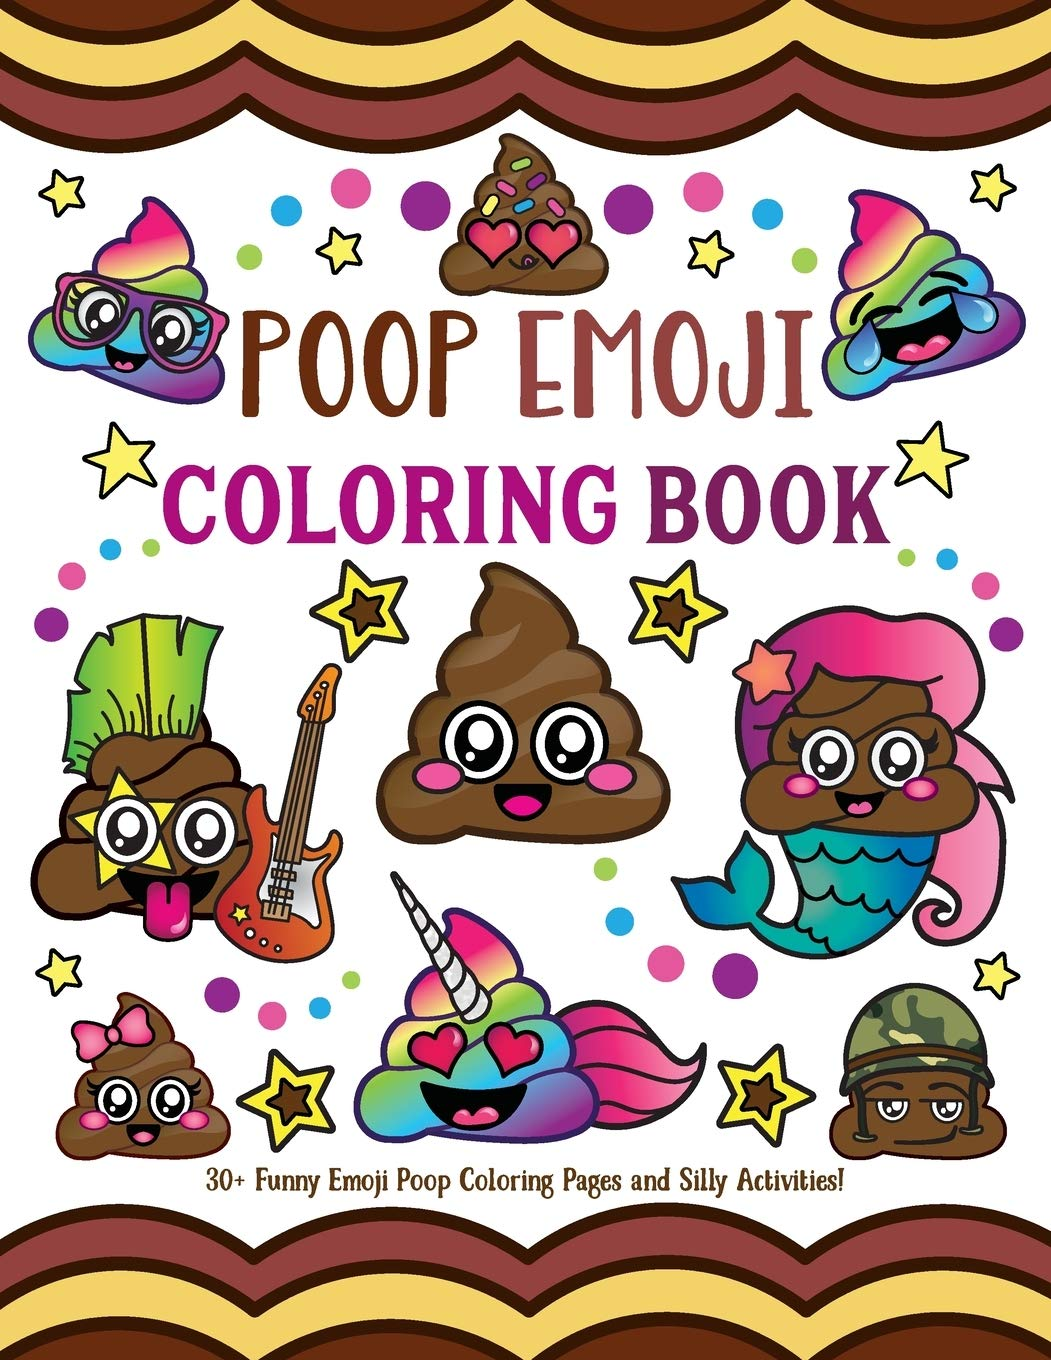 Amazon Com Poop Emoji Coloring Book 30 Funny Emoji Poop Coloring Pages And Silly Activities 9781643400129 Spectrum Nyx Books